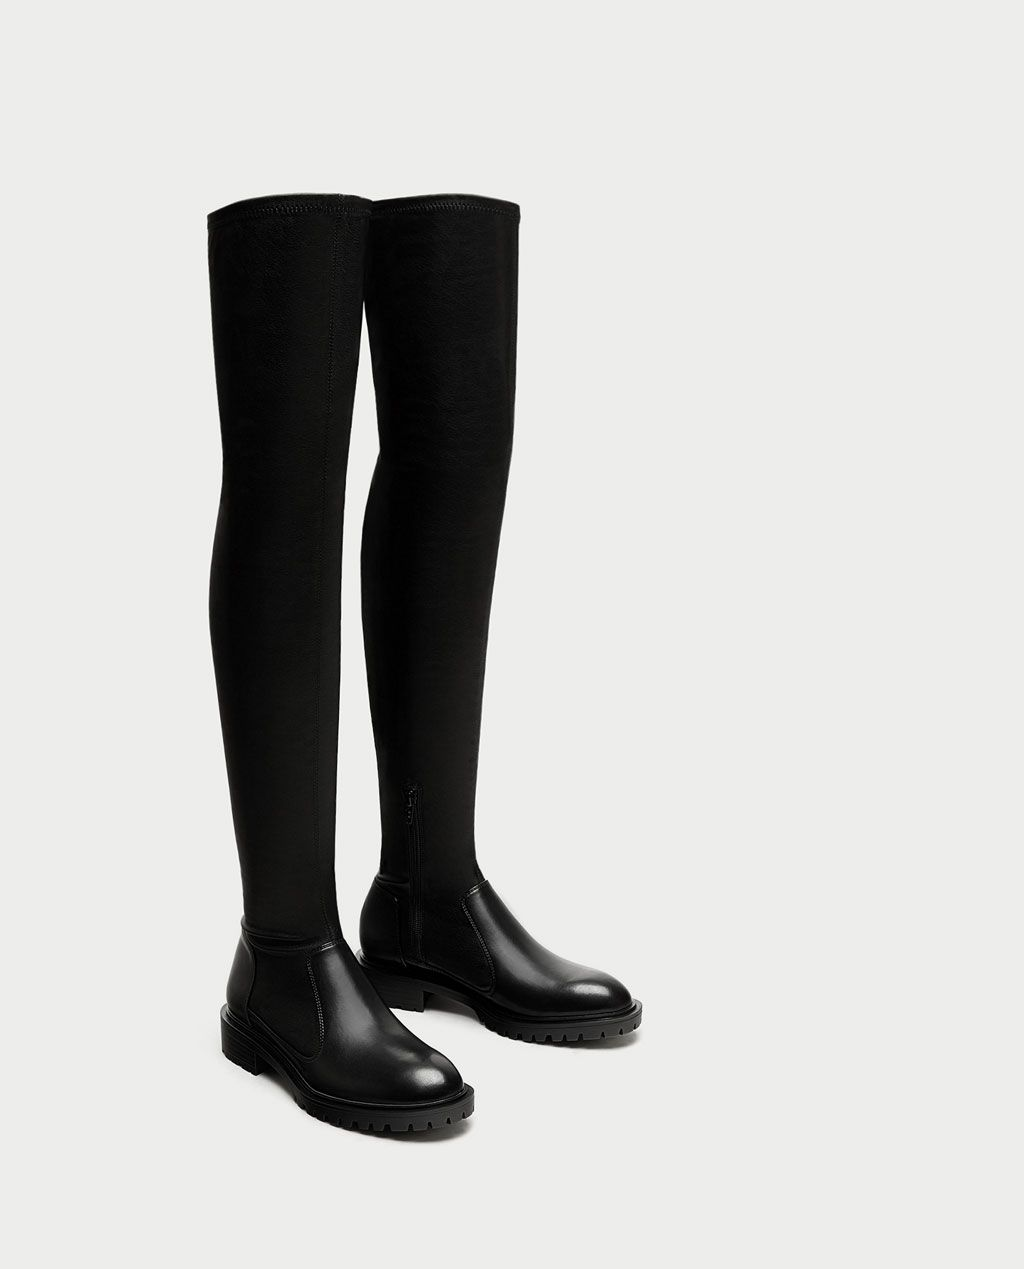 444d175624c FLAT OVER-THE-KNEE BOOTS WITH TOE DETAIL-View all-SHOES-WOMAN